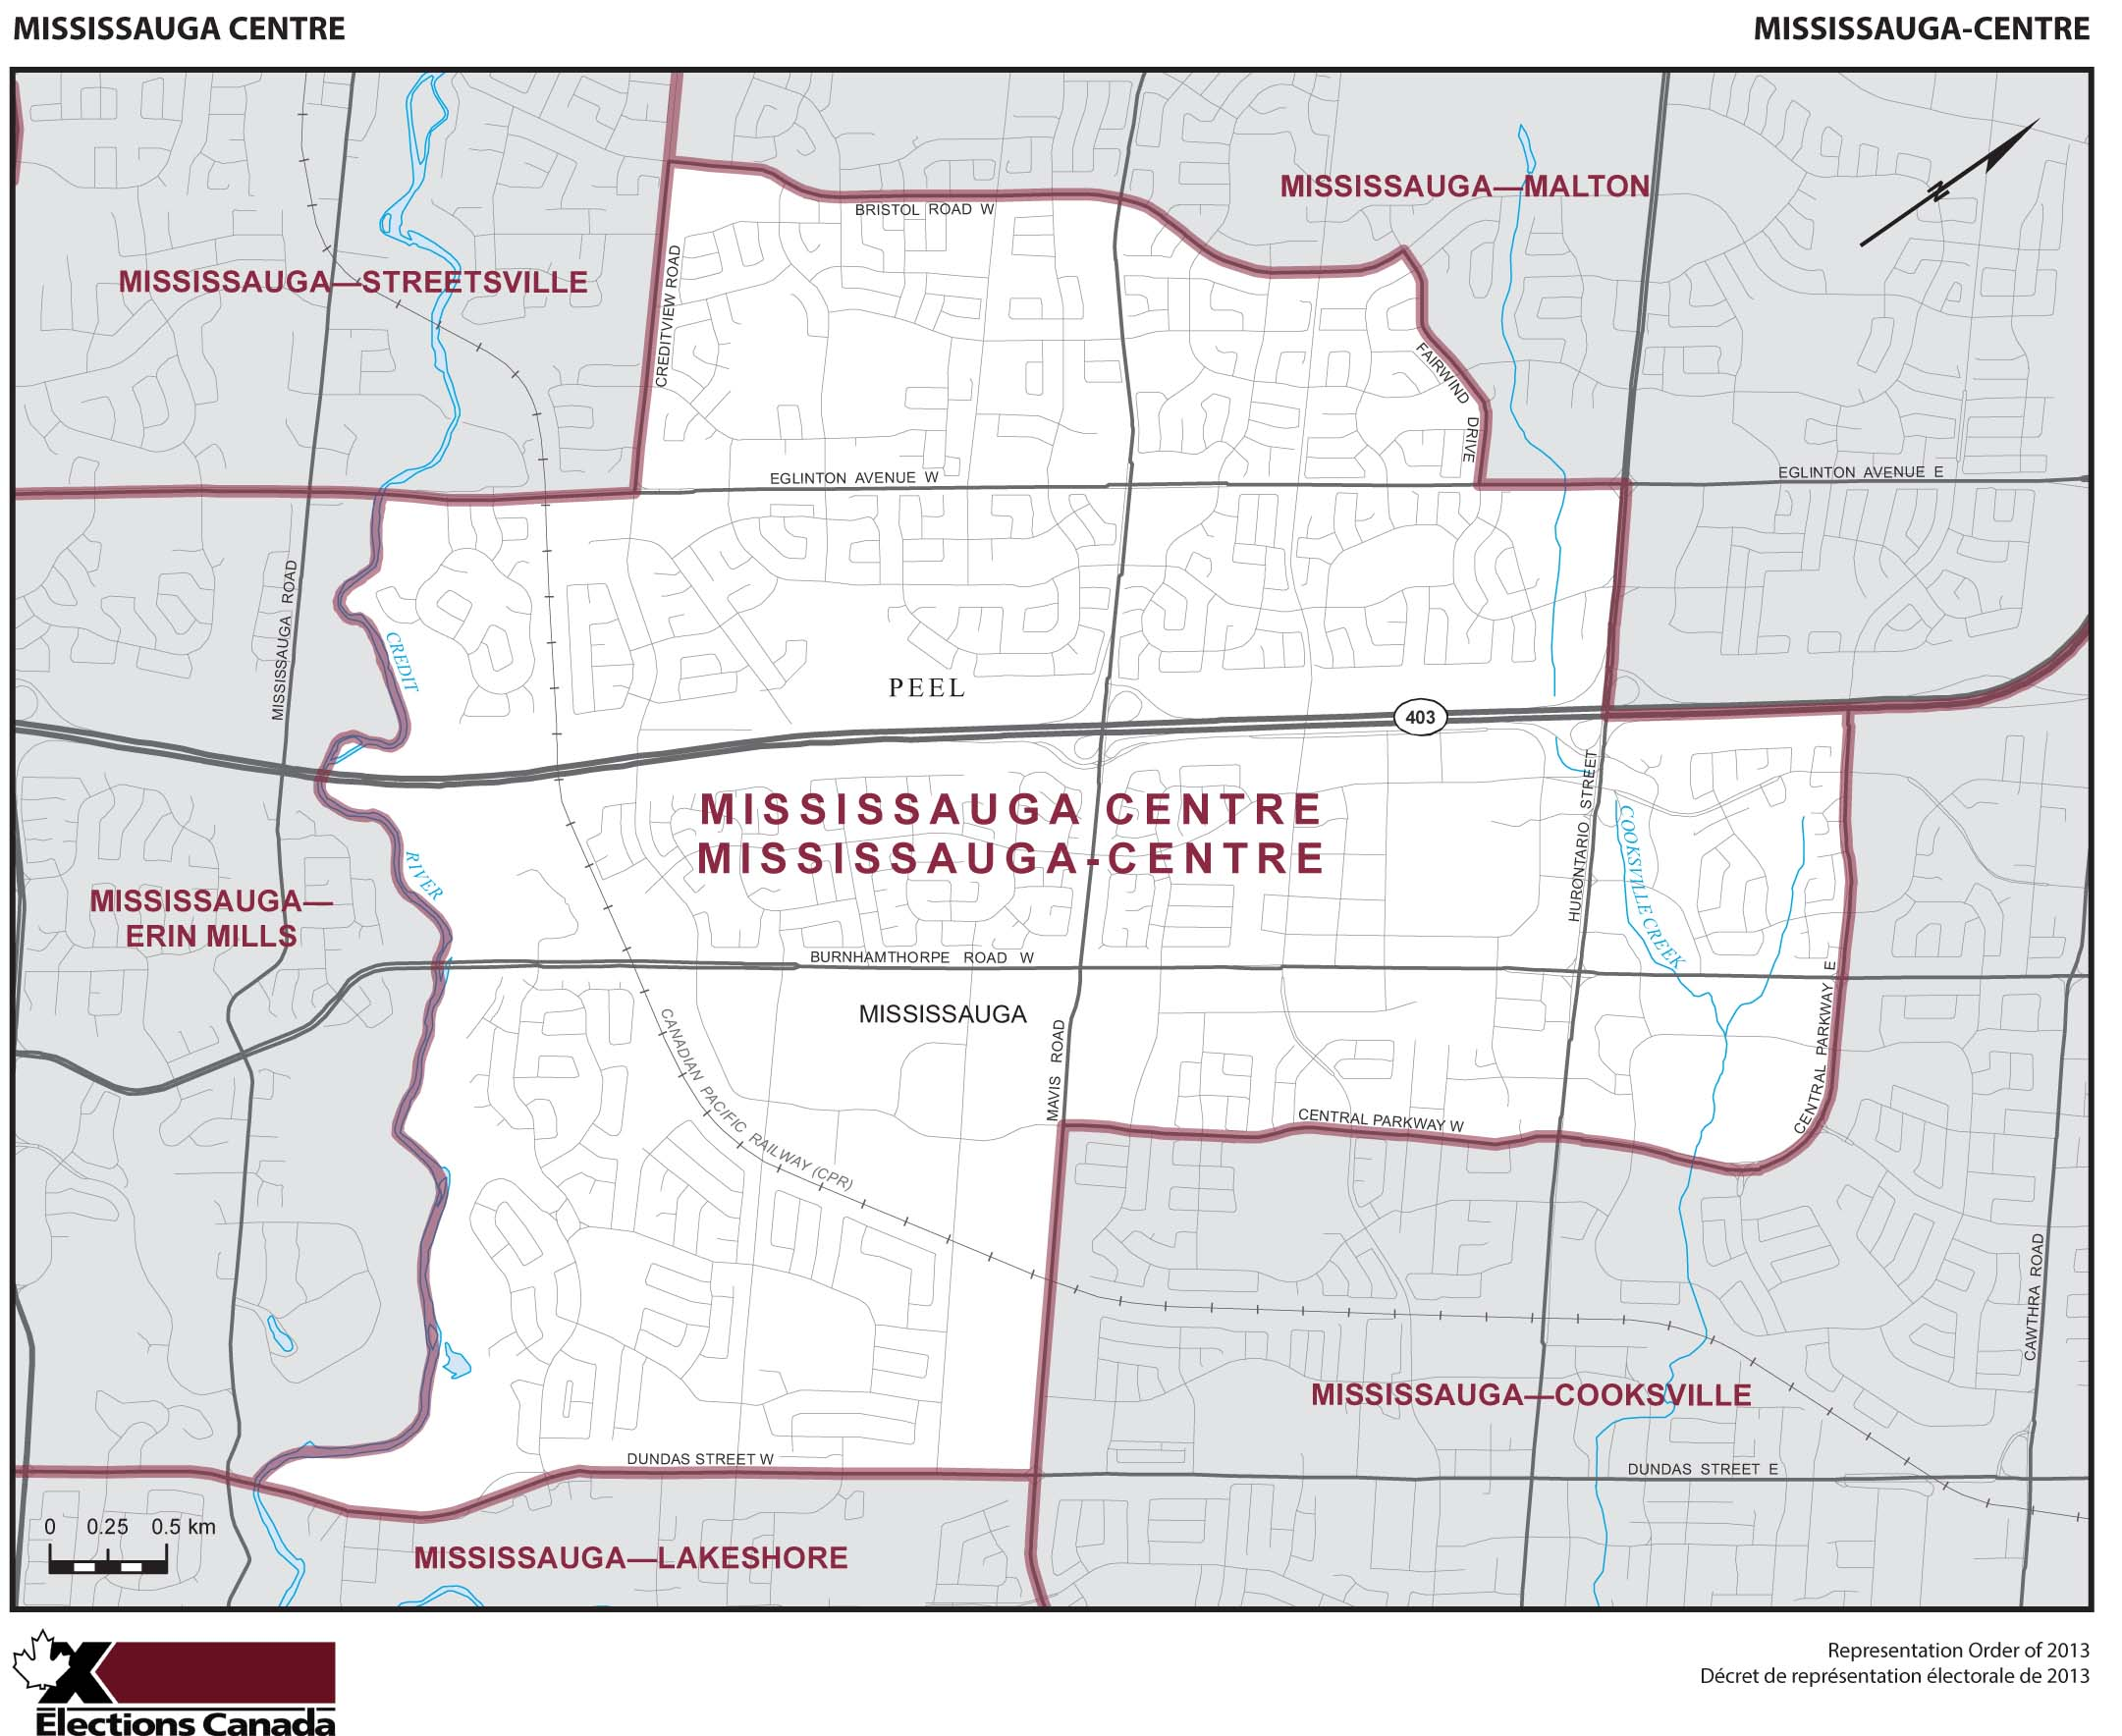 Map: Mississauga Centre, Federal electoral district, 2013 Representation Order (in white), Ontario